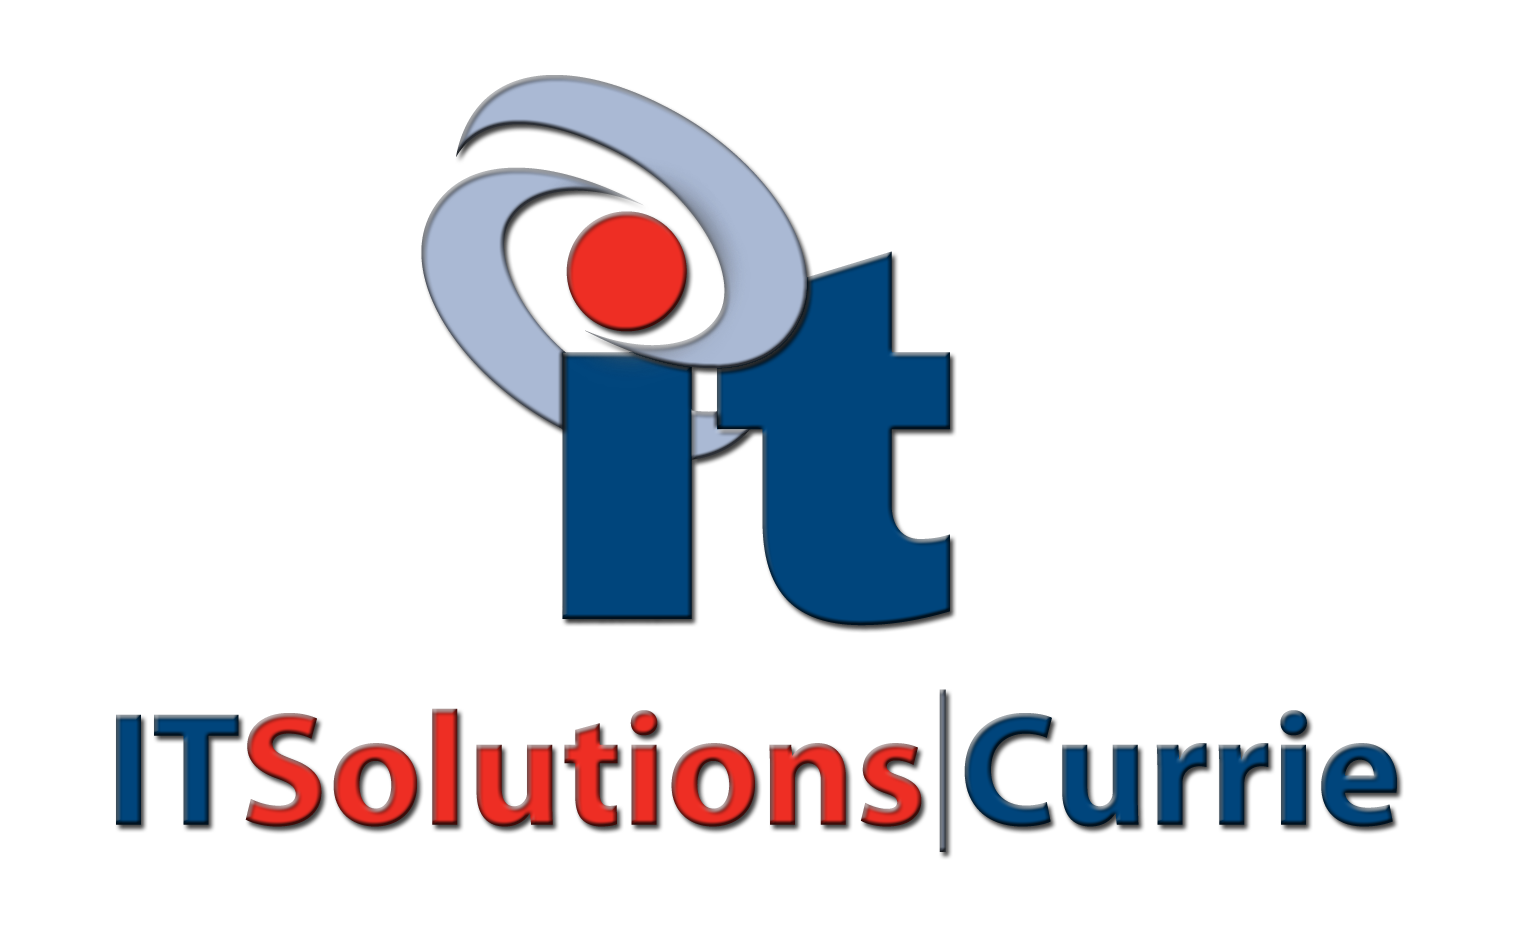 ITSolutions|Currie